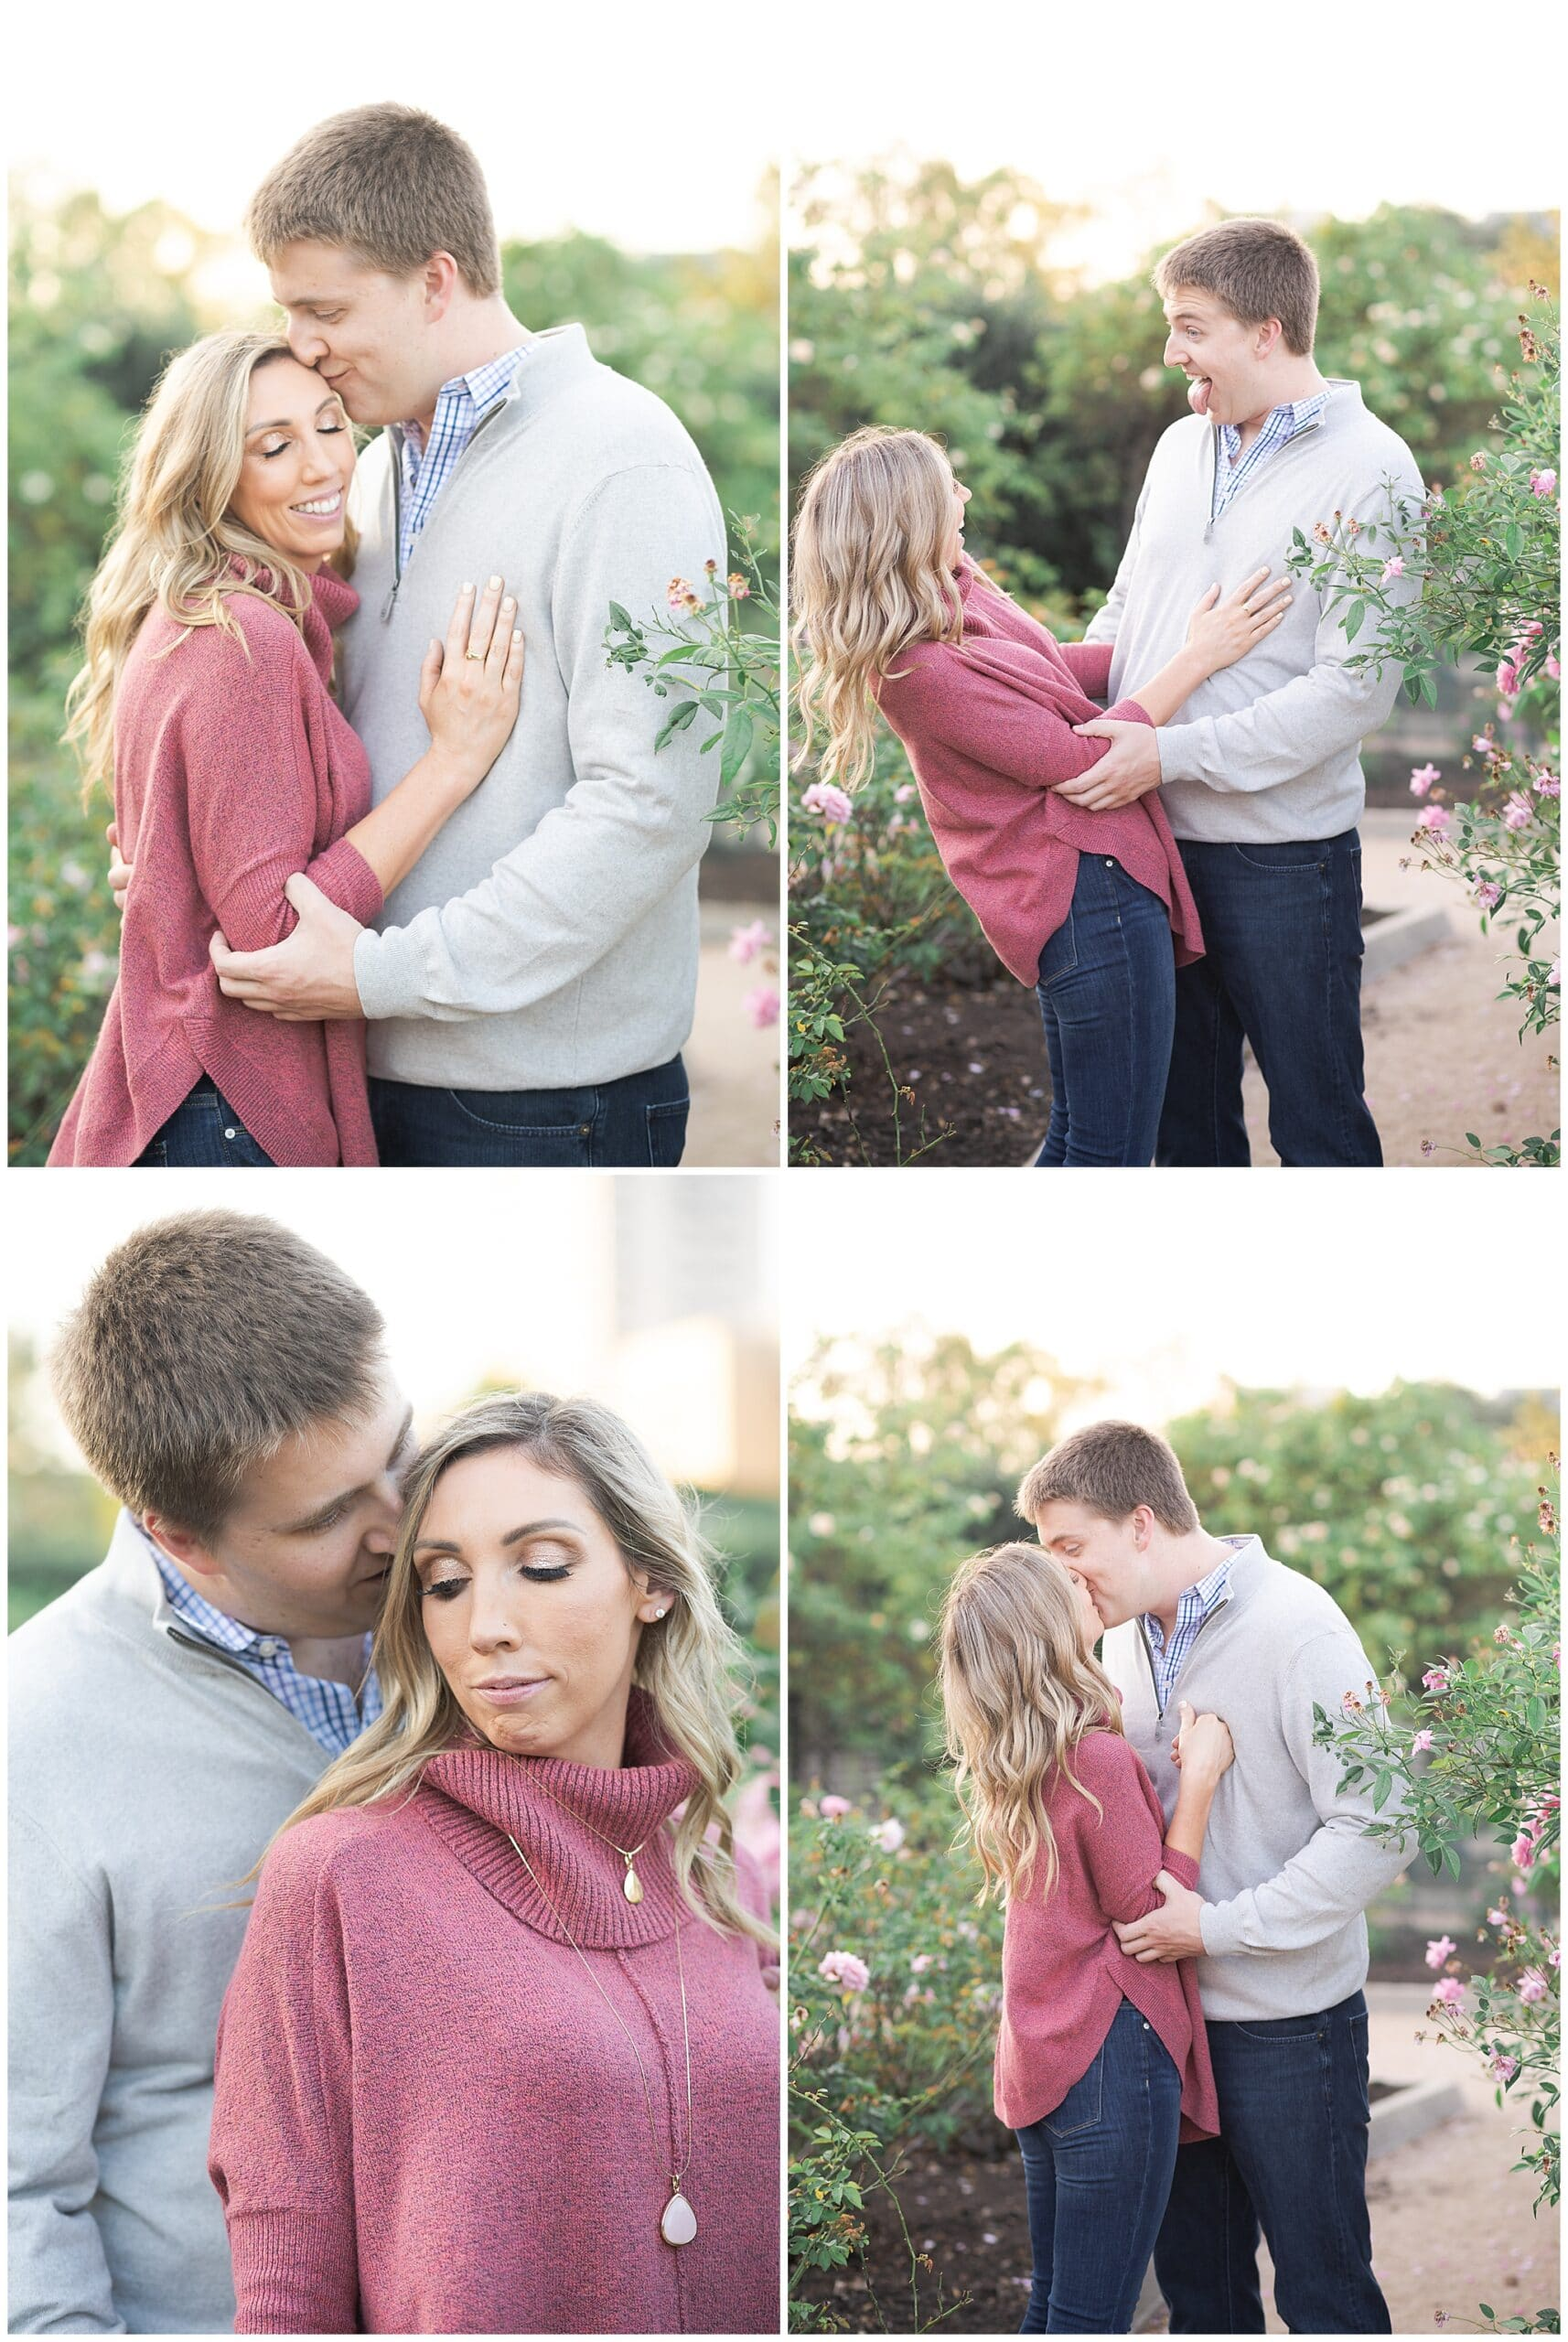 engagement photos at McGovern Centennial Gardens captured by Swish and Click Photography a Houston wedding photographer